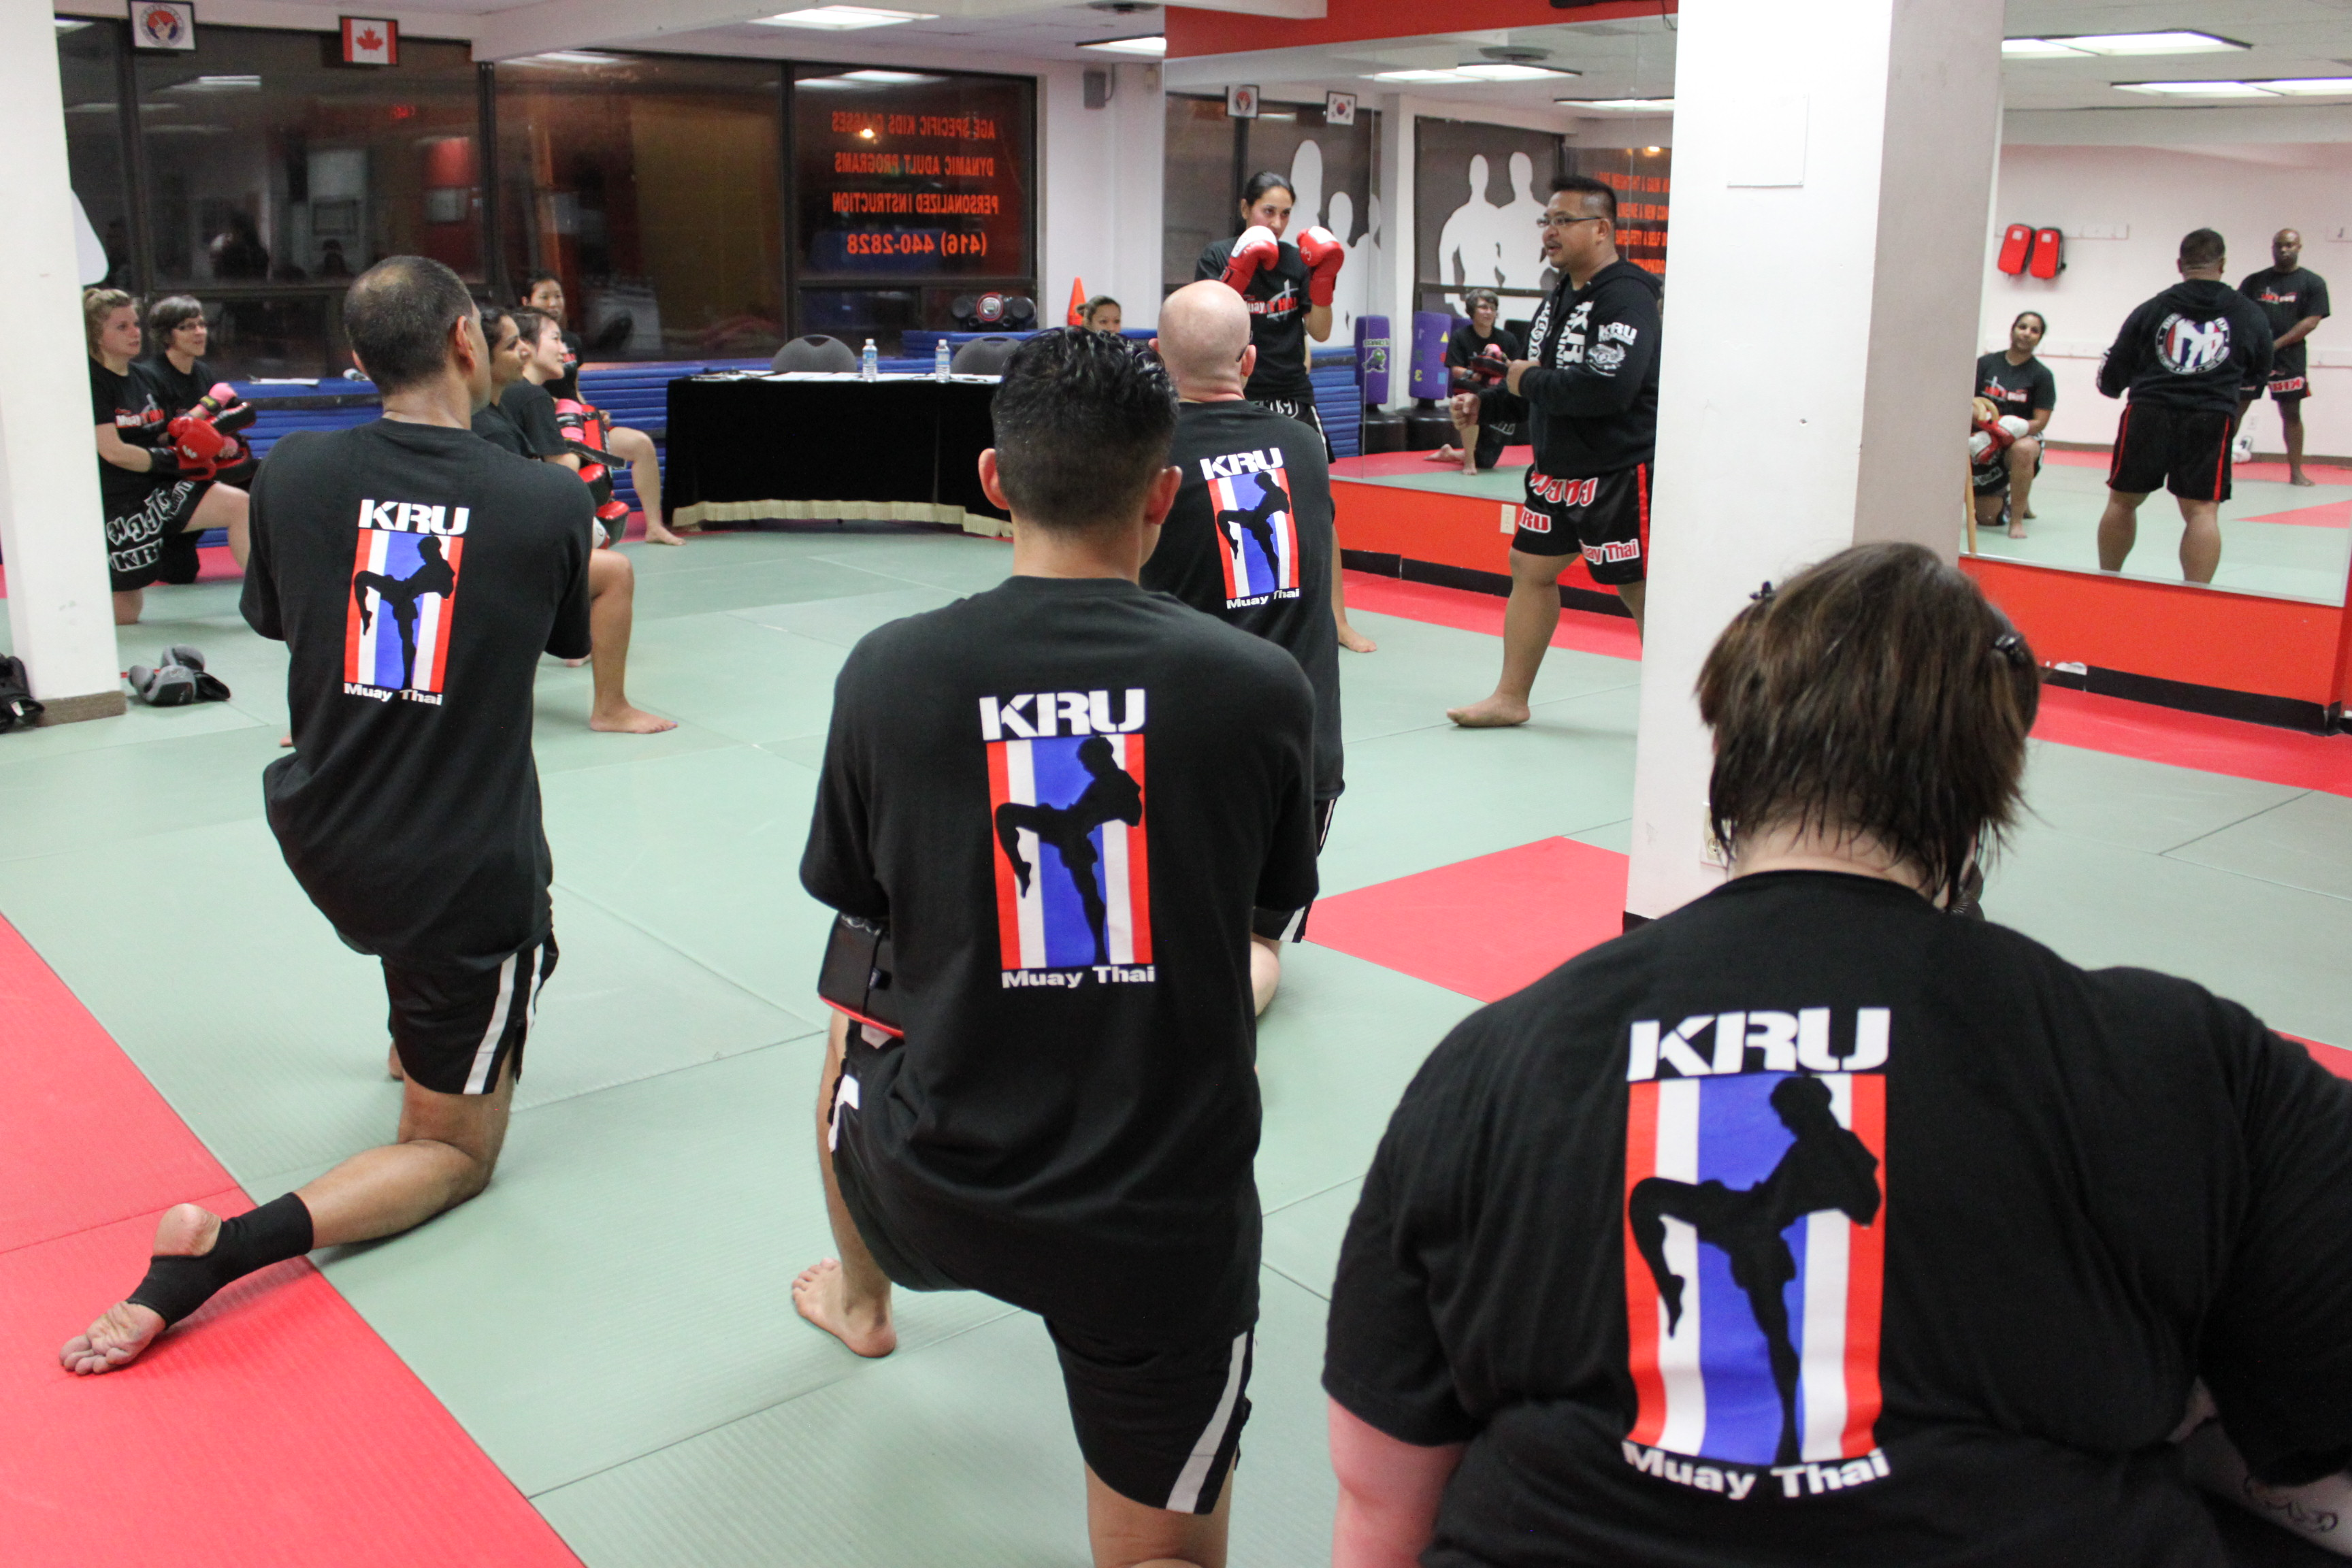 Toronto Muay Thai class for beginners